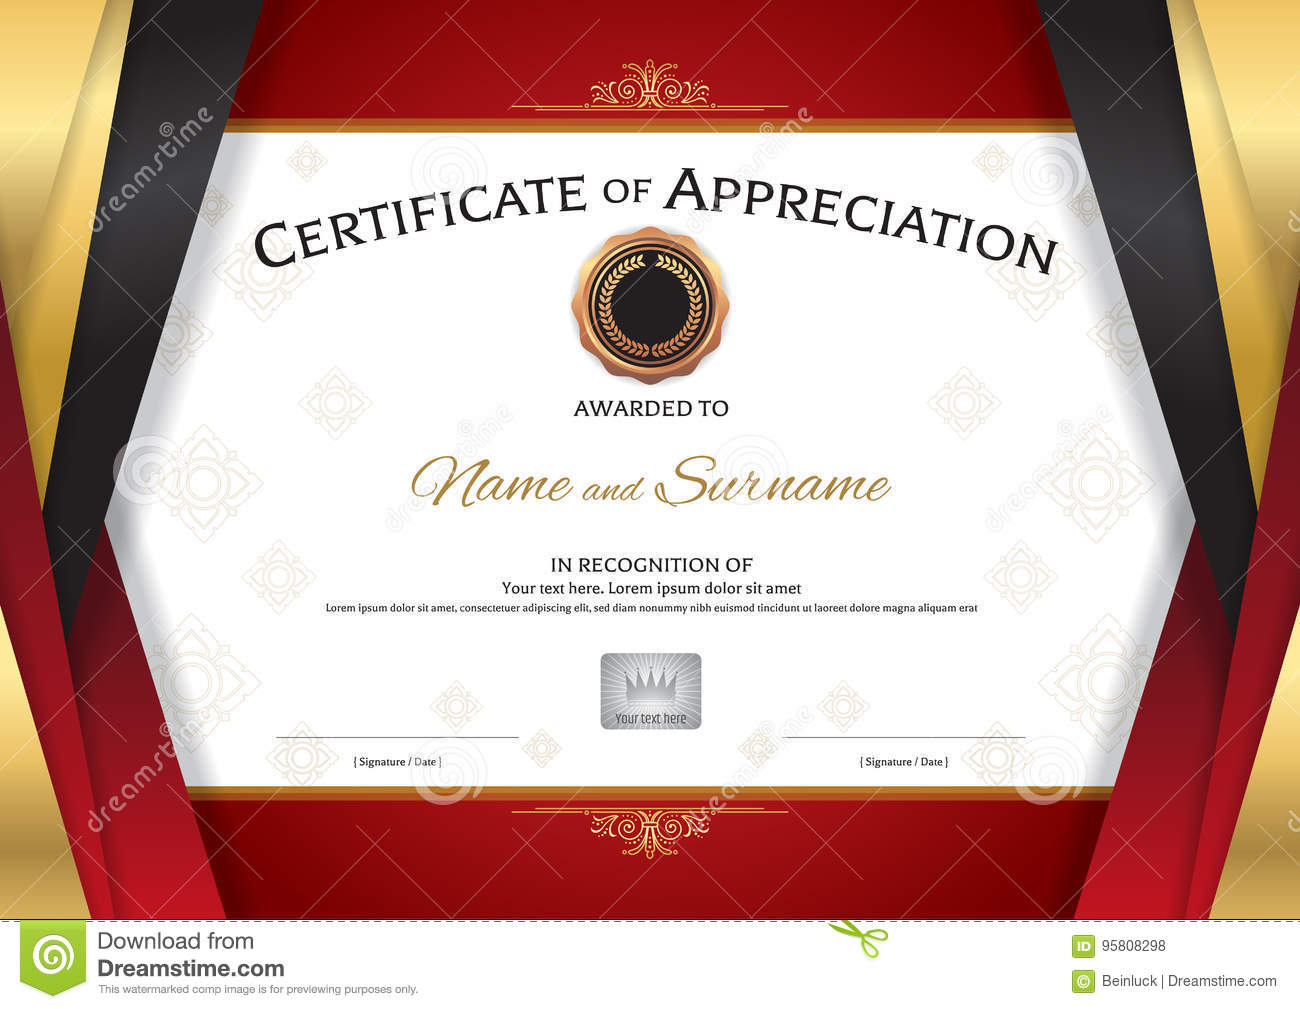 Luxury certificate template with elegant golden red border frame luxury certificate template with elegant golden red border frame royalty free vector xflitez Image collections